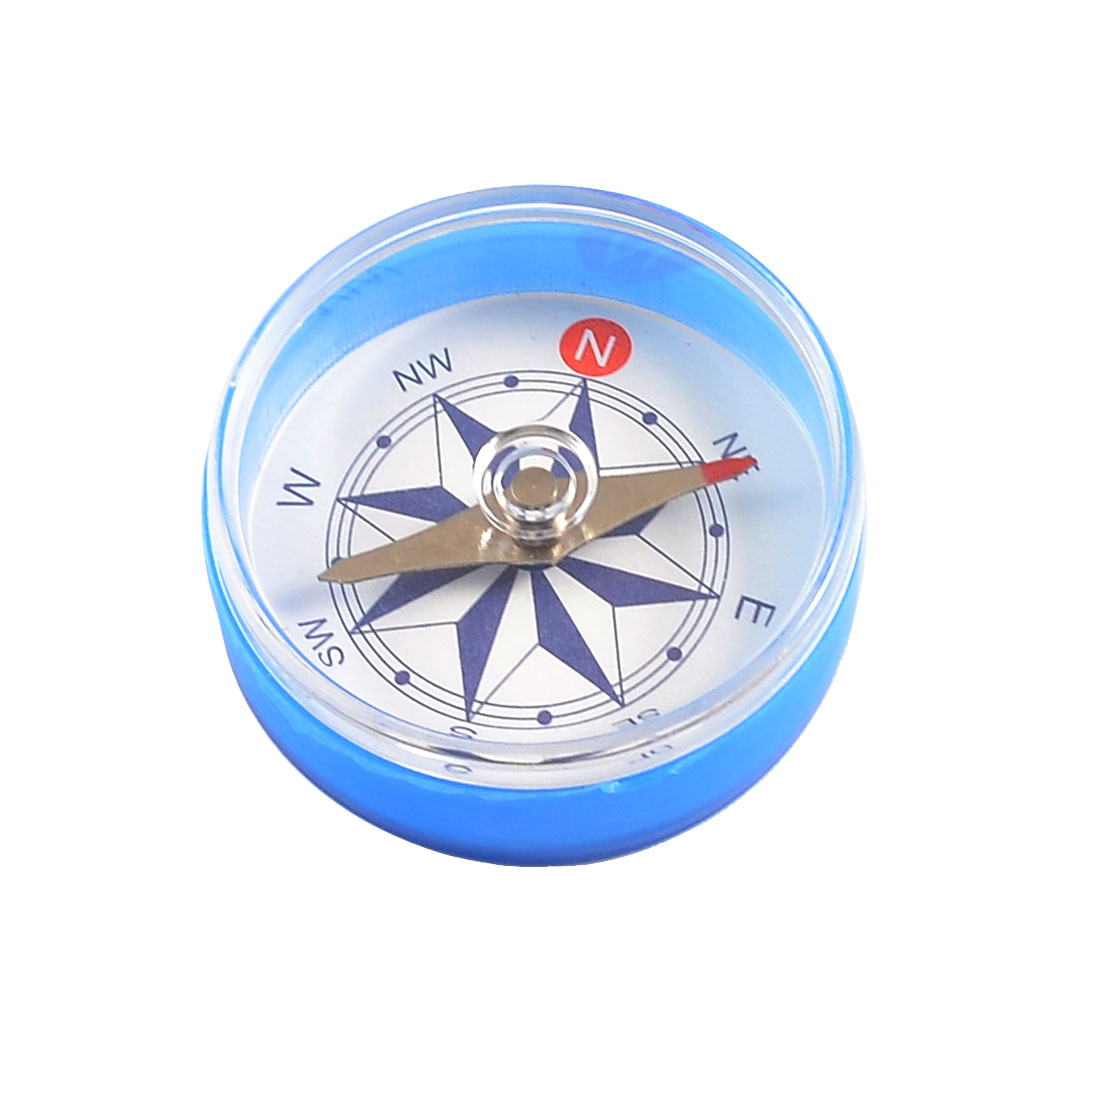 Outdoor Hiking Camping Blue Clear Plastic Shell Round Compass